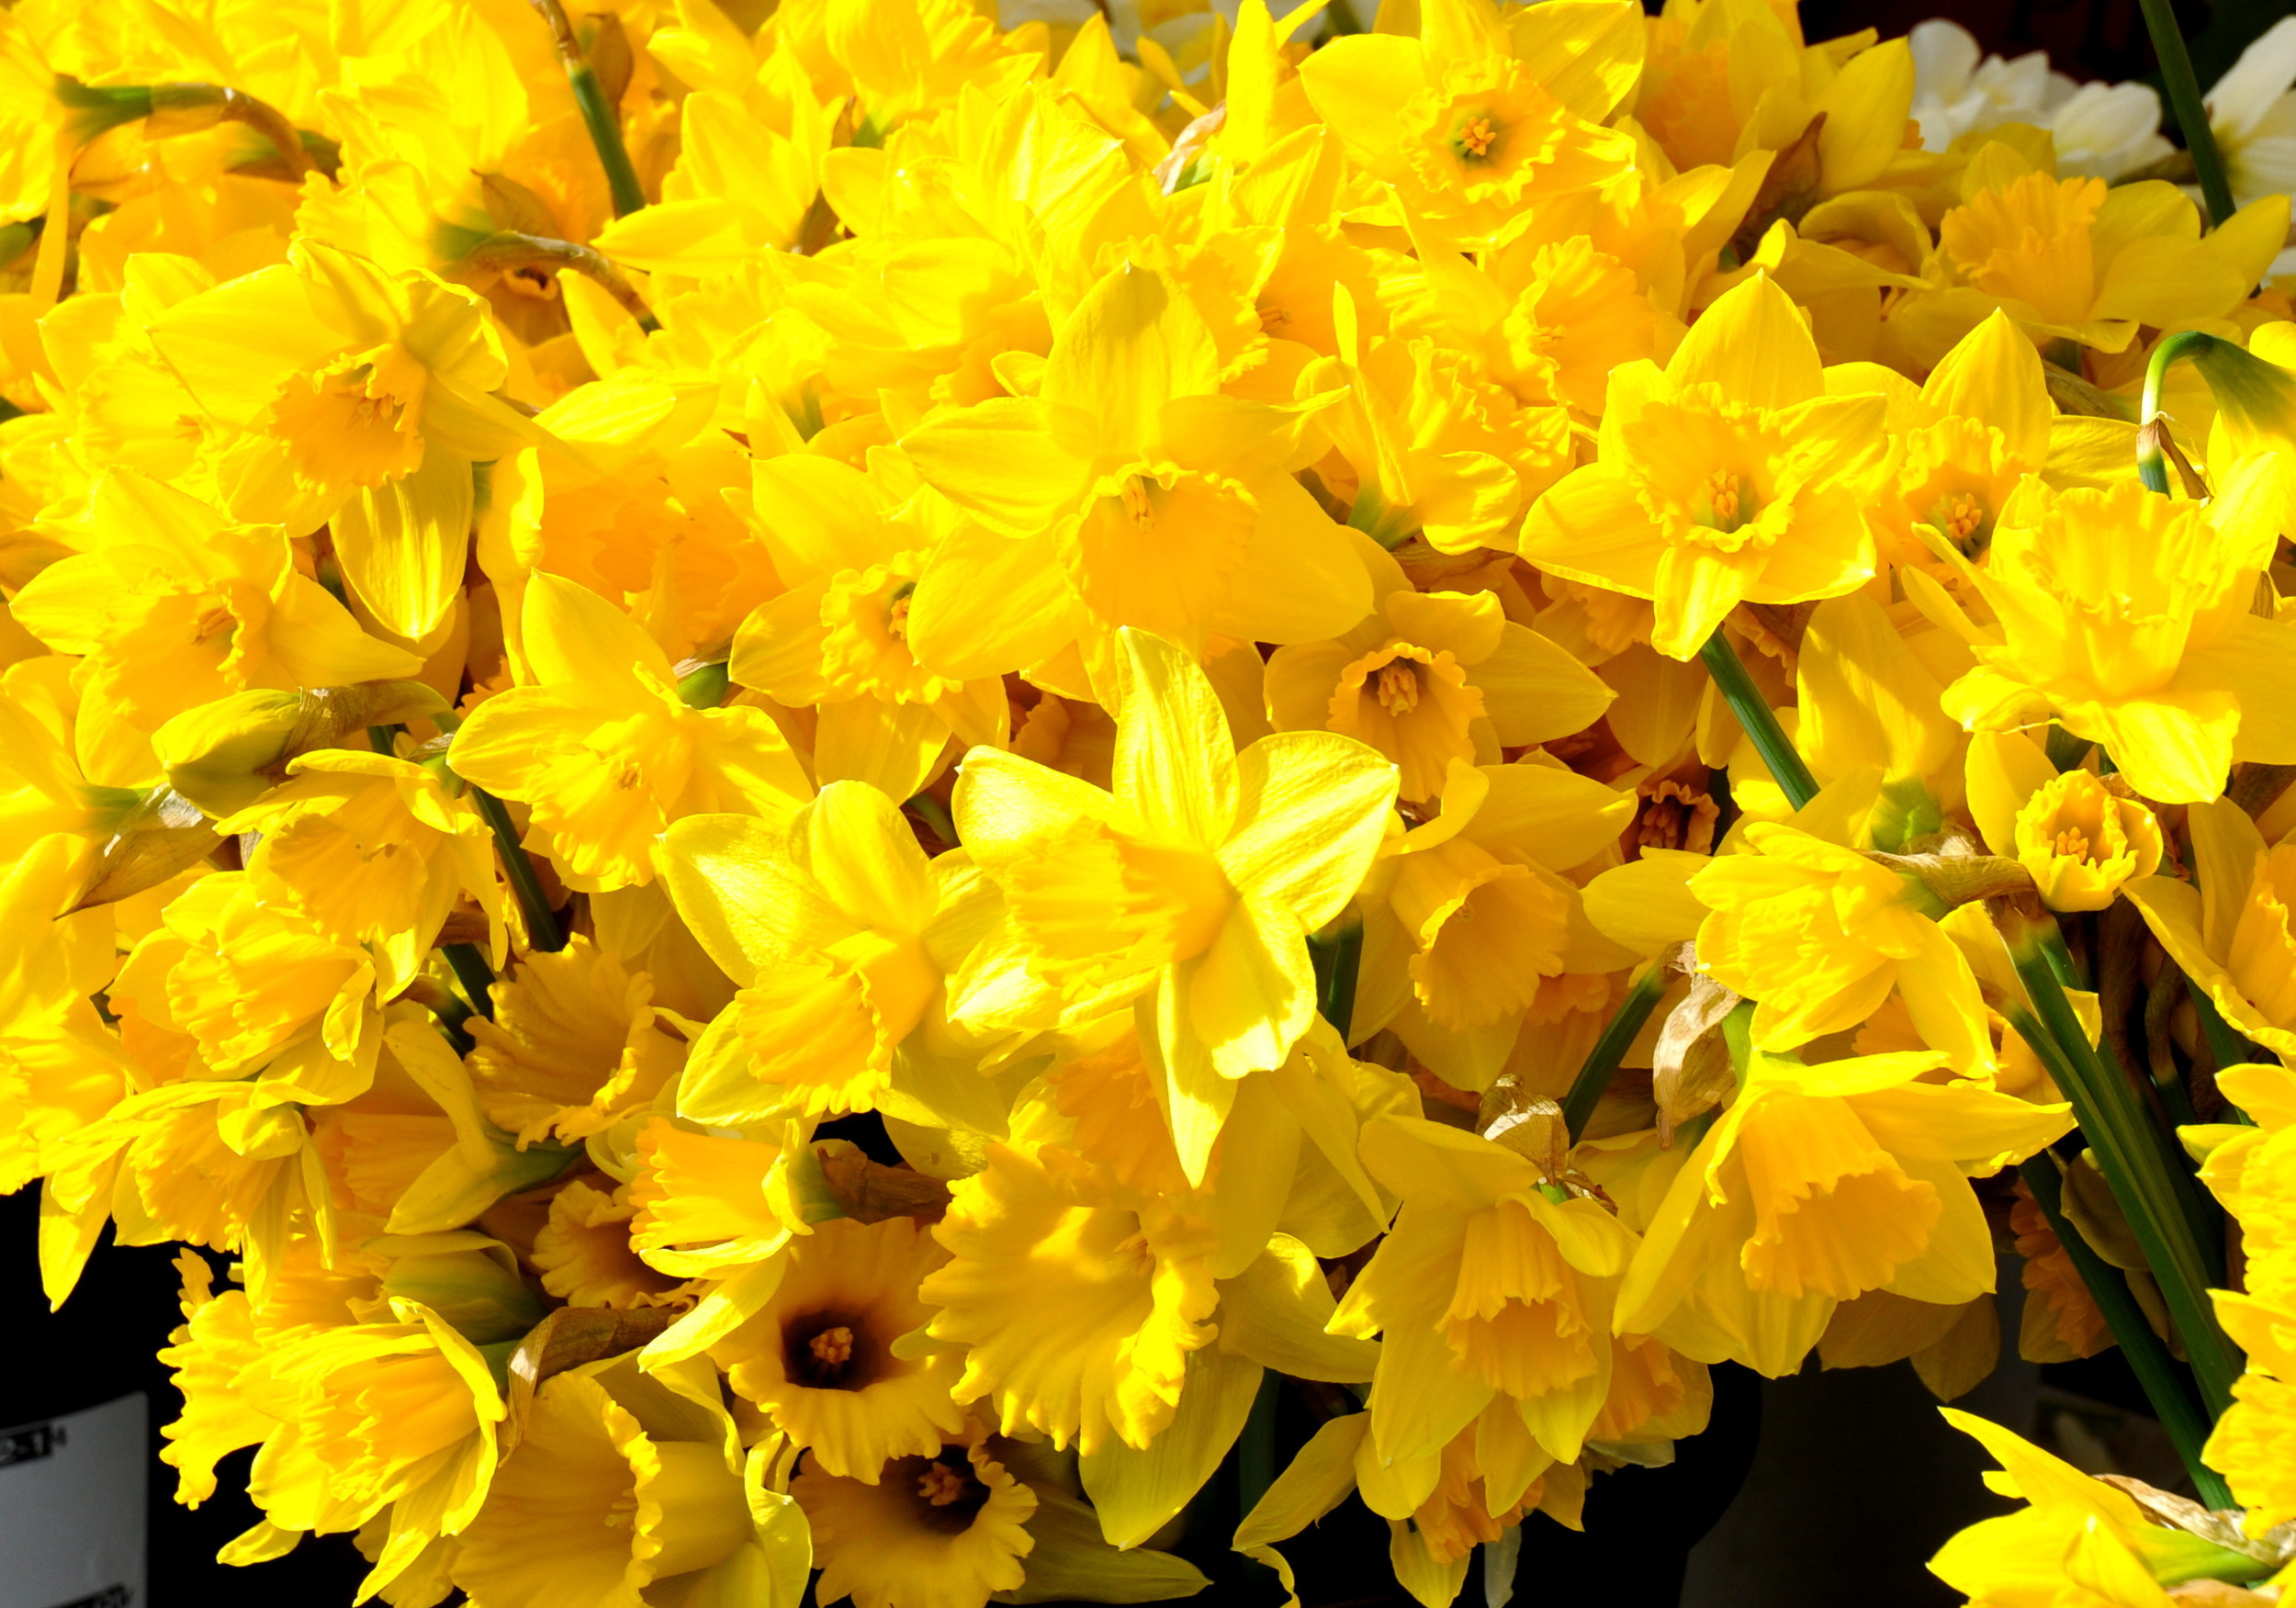 Daffodils from Children's Garden. Photo copyright 2014 by Zachary D. Lyons.